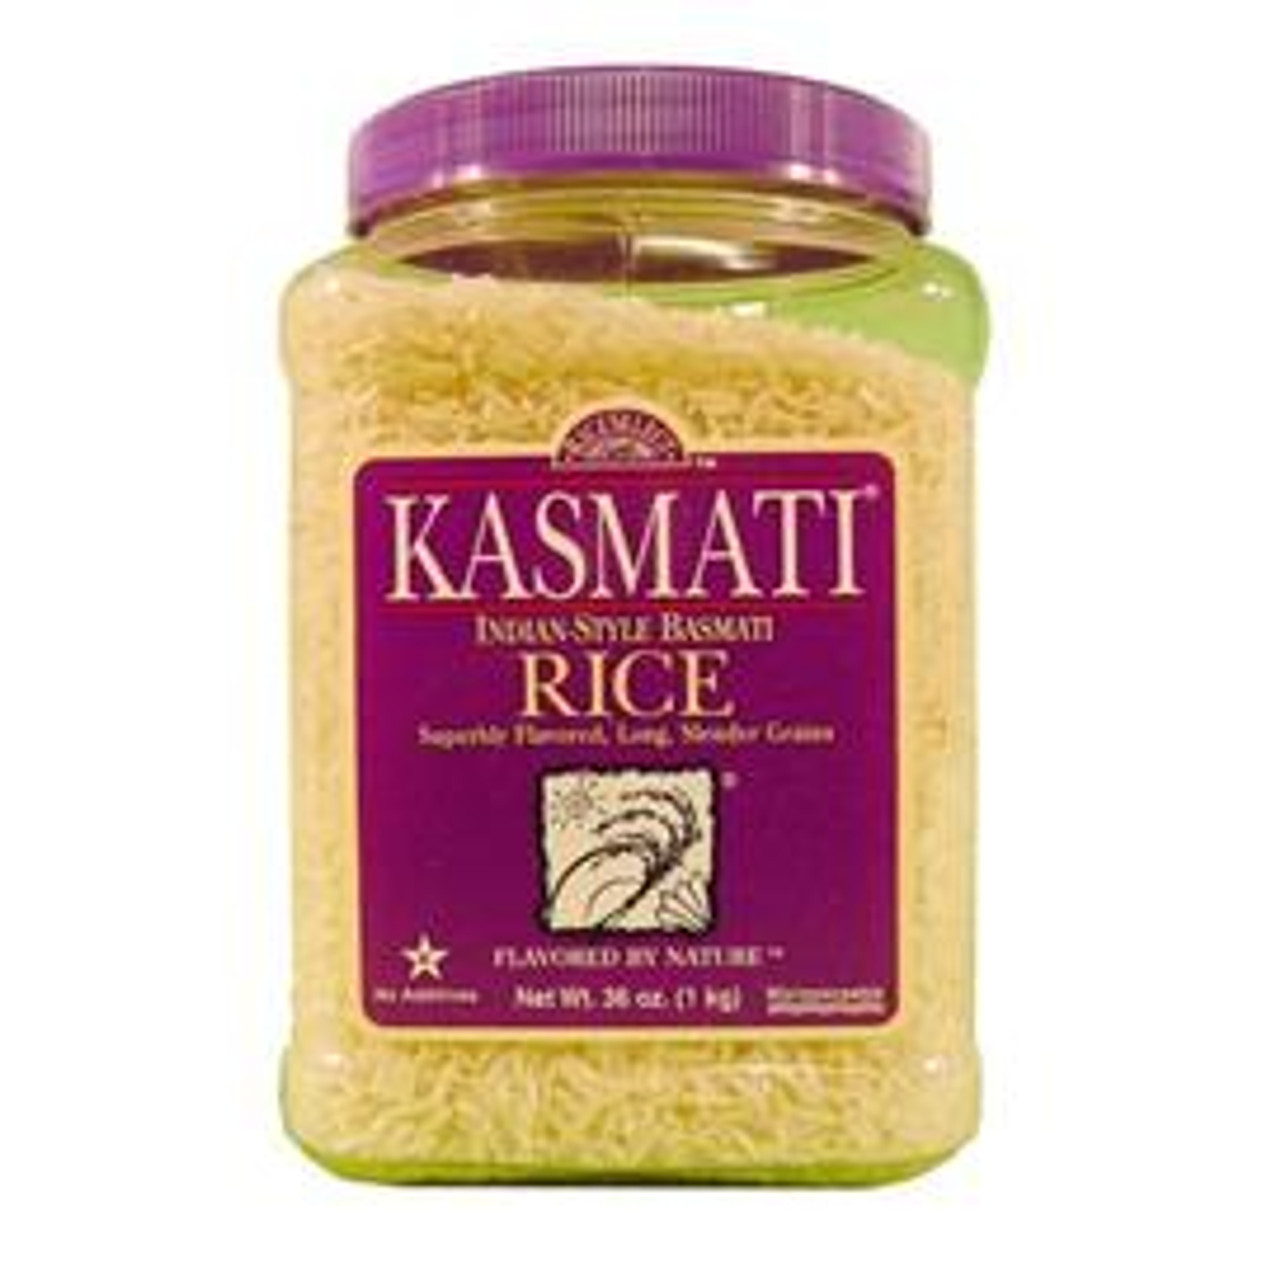 Kasmati Indian Style Basmati Rice